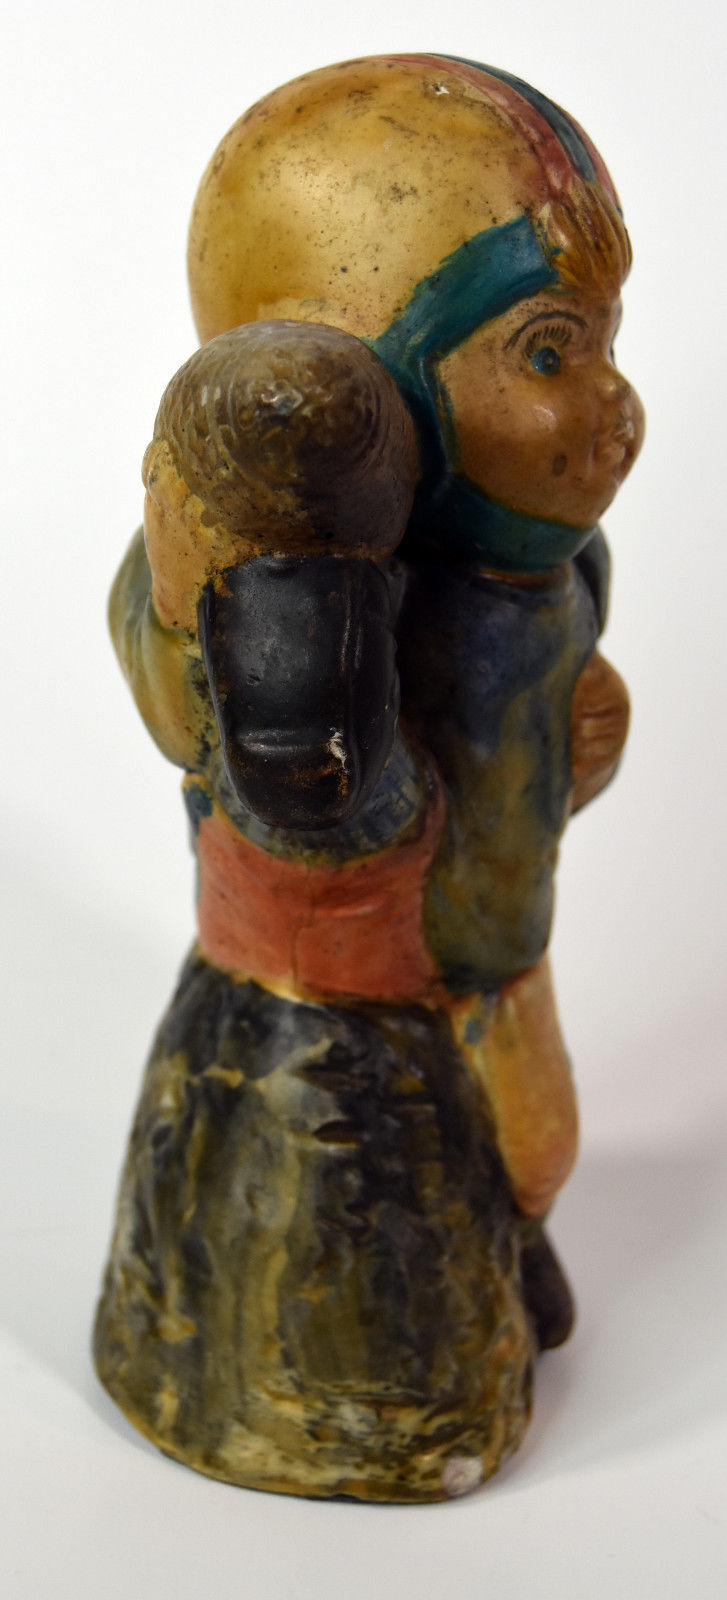 "6"" Early American Footbal Statue Figure Yellow / Green Team Colors"